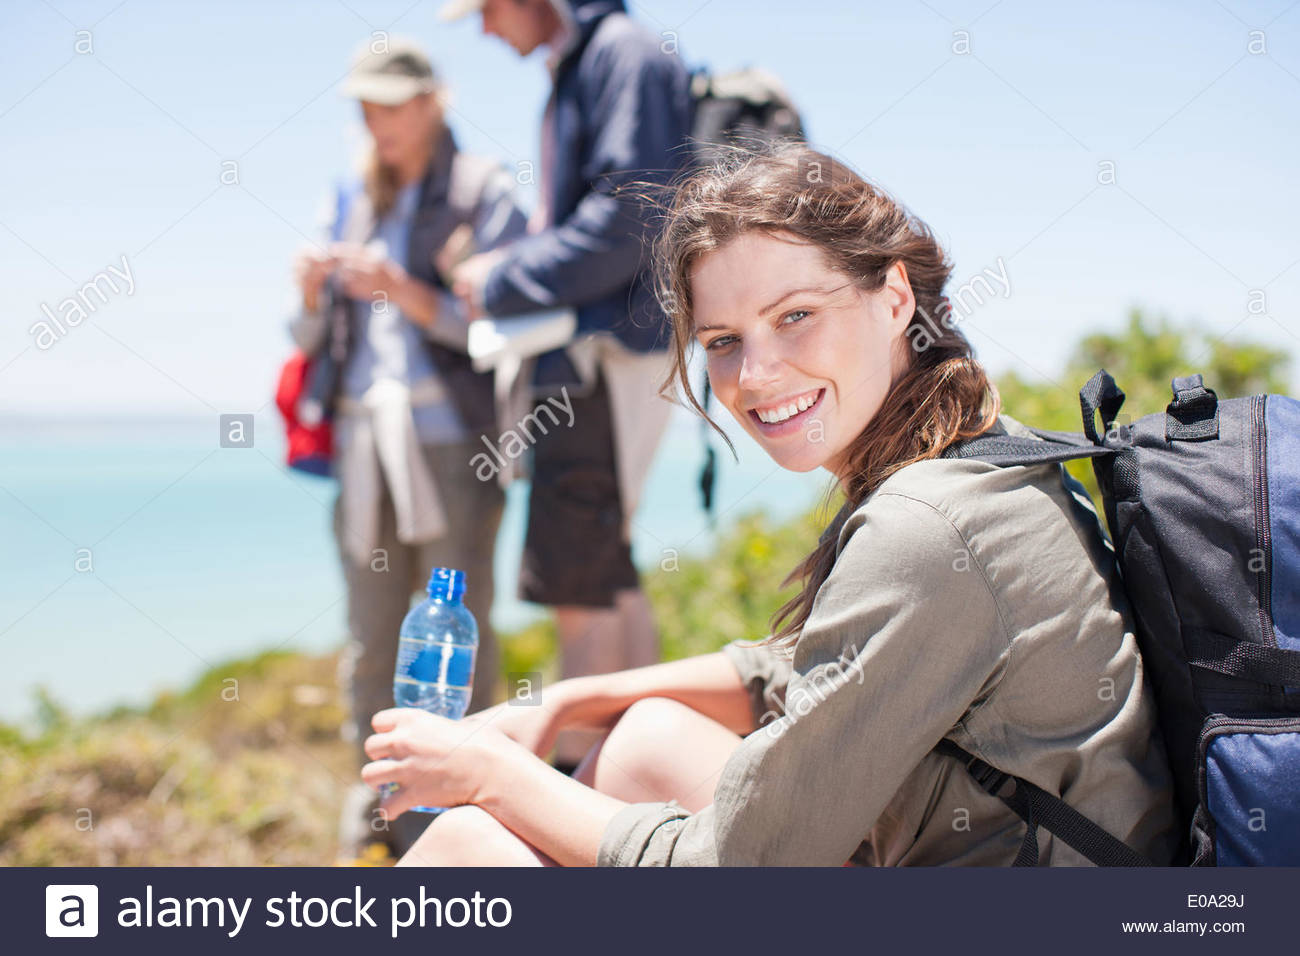 Woman hiker drinking water - Stock Image